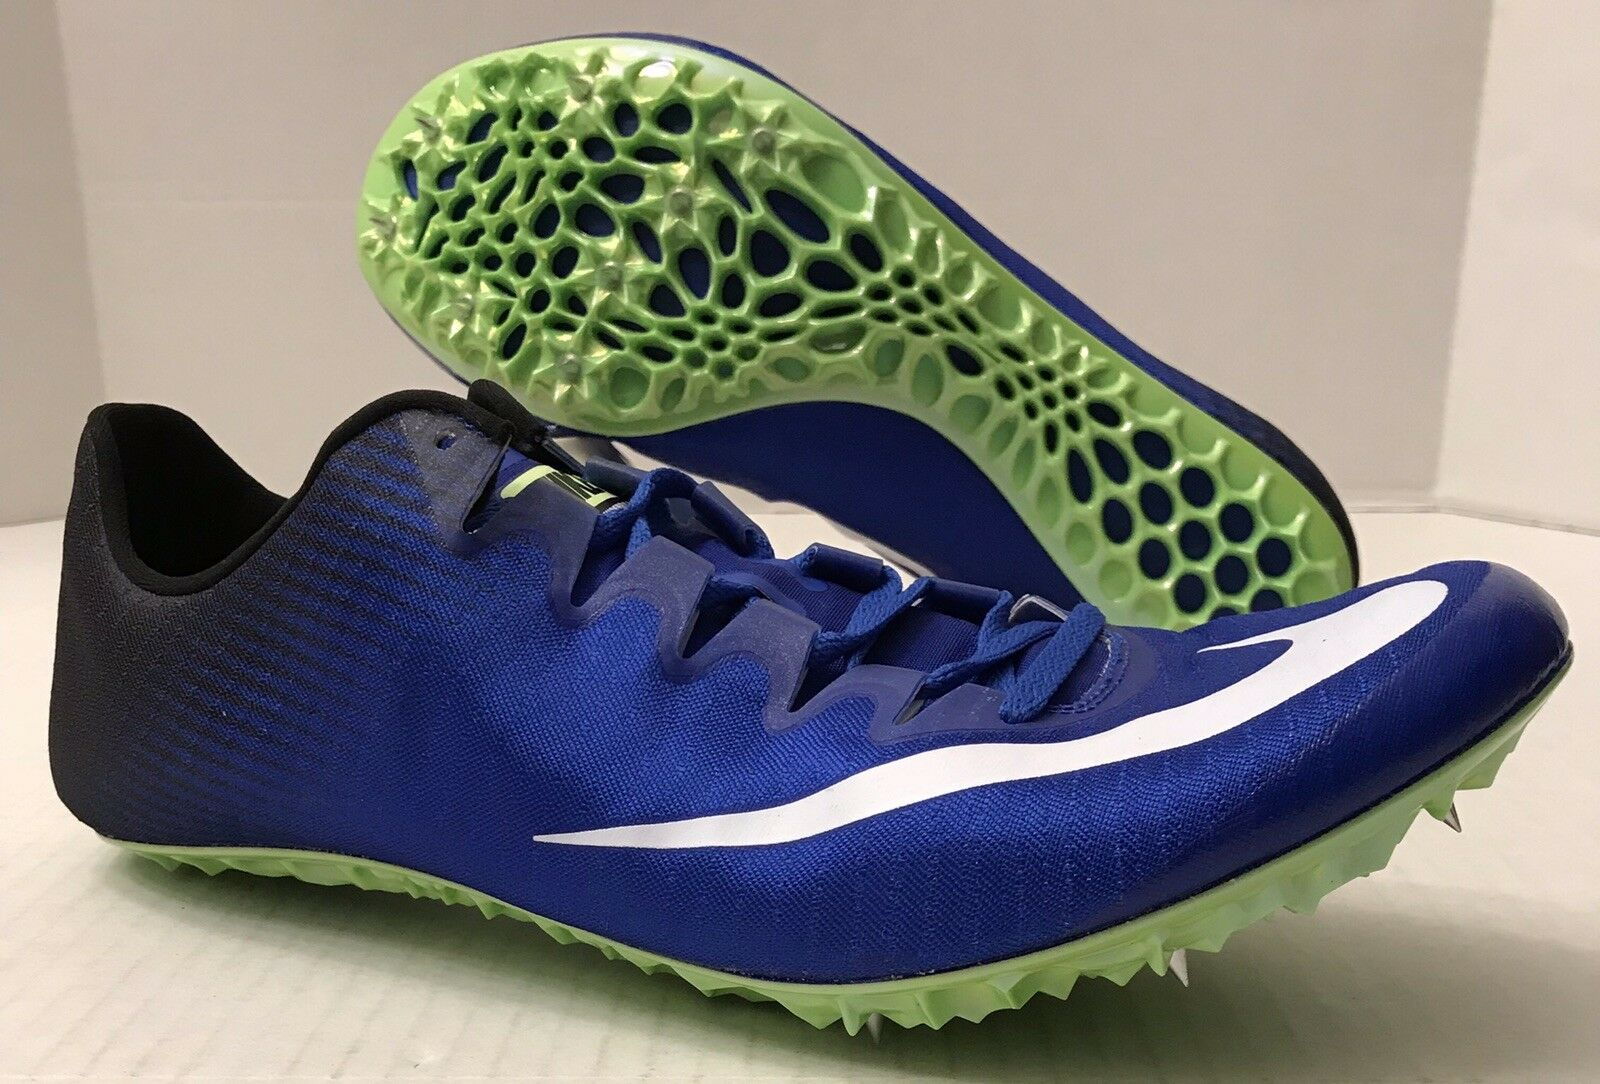 NIKE ZOOM SUPERFLY ELITE SPRINT RACING TRACK SPIKES 835996 (MEN'S 12.5) NO BOX